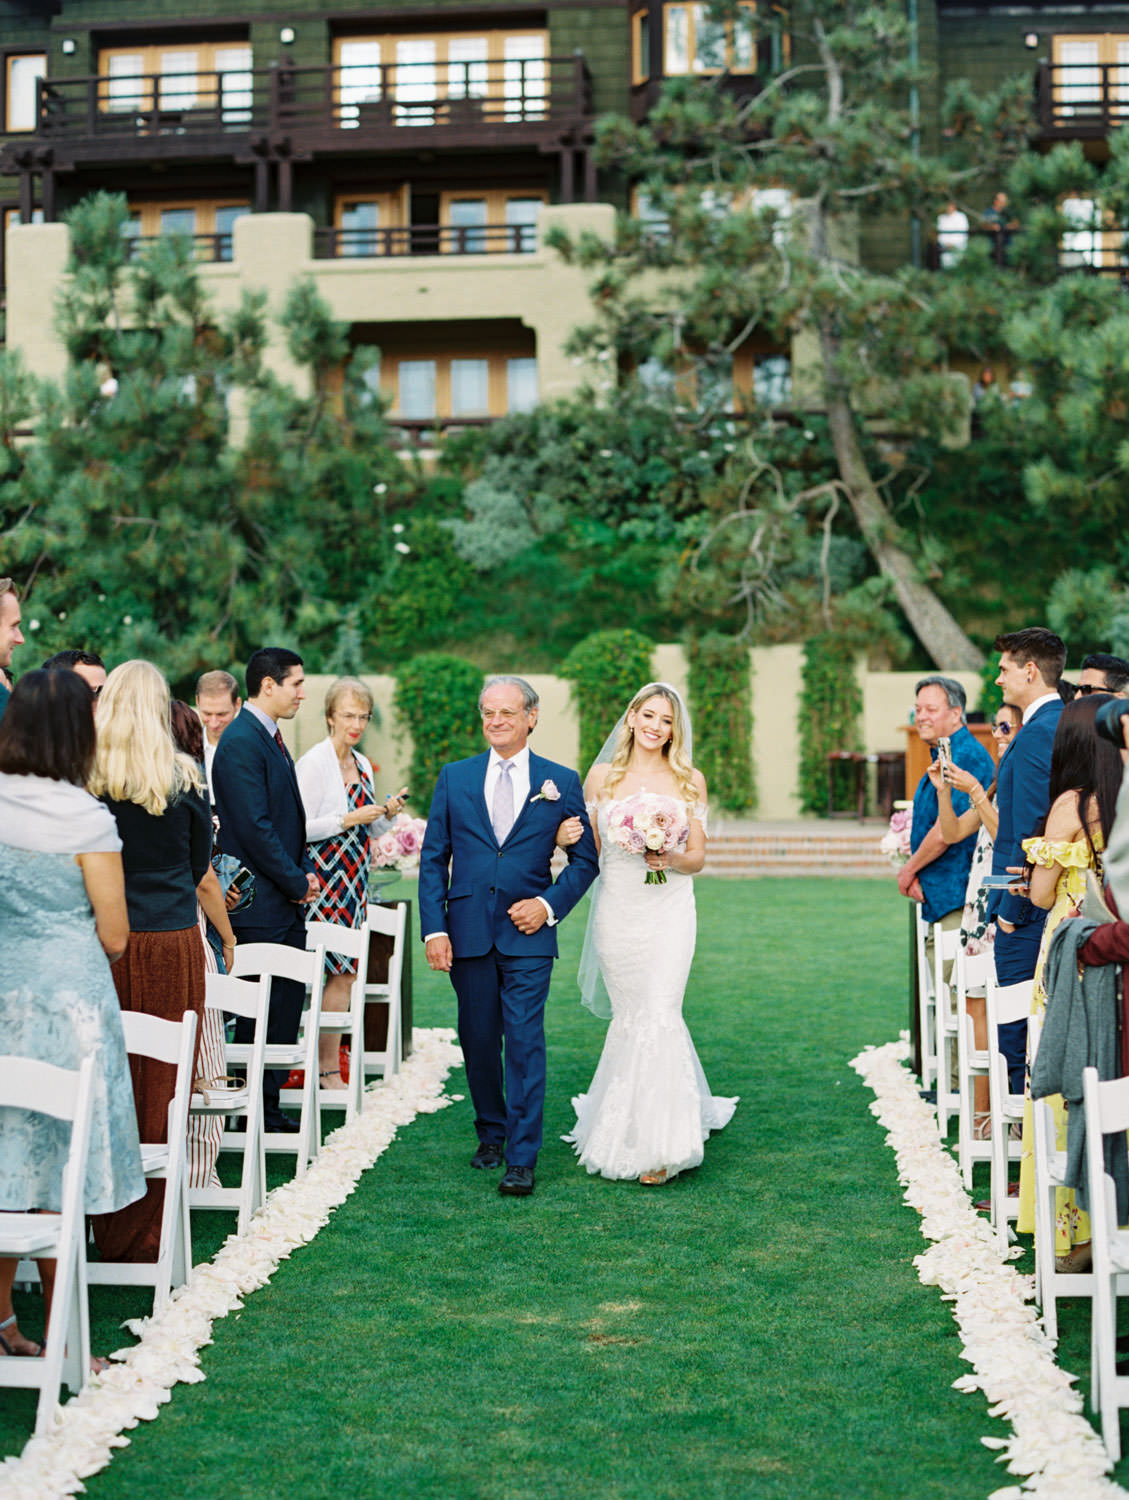 Bride walking down the grassy aisle with petals on either side at a rustic upscale venue in San Diego, Lodge at Torrey Pines wedding, film photography by Cavin Elizabeth Photography